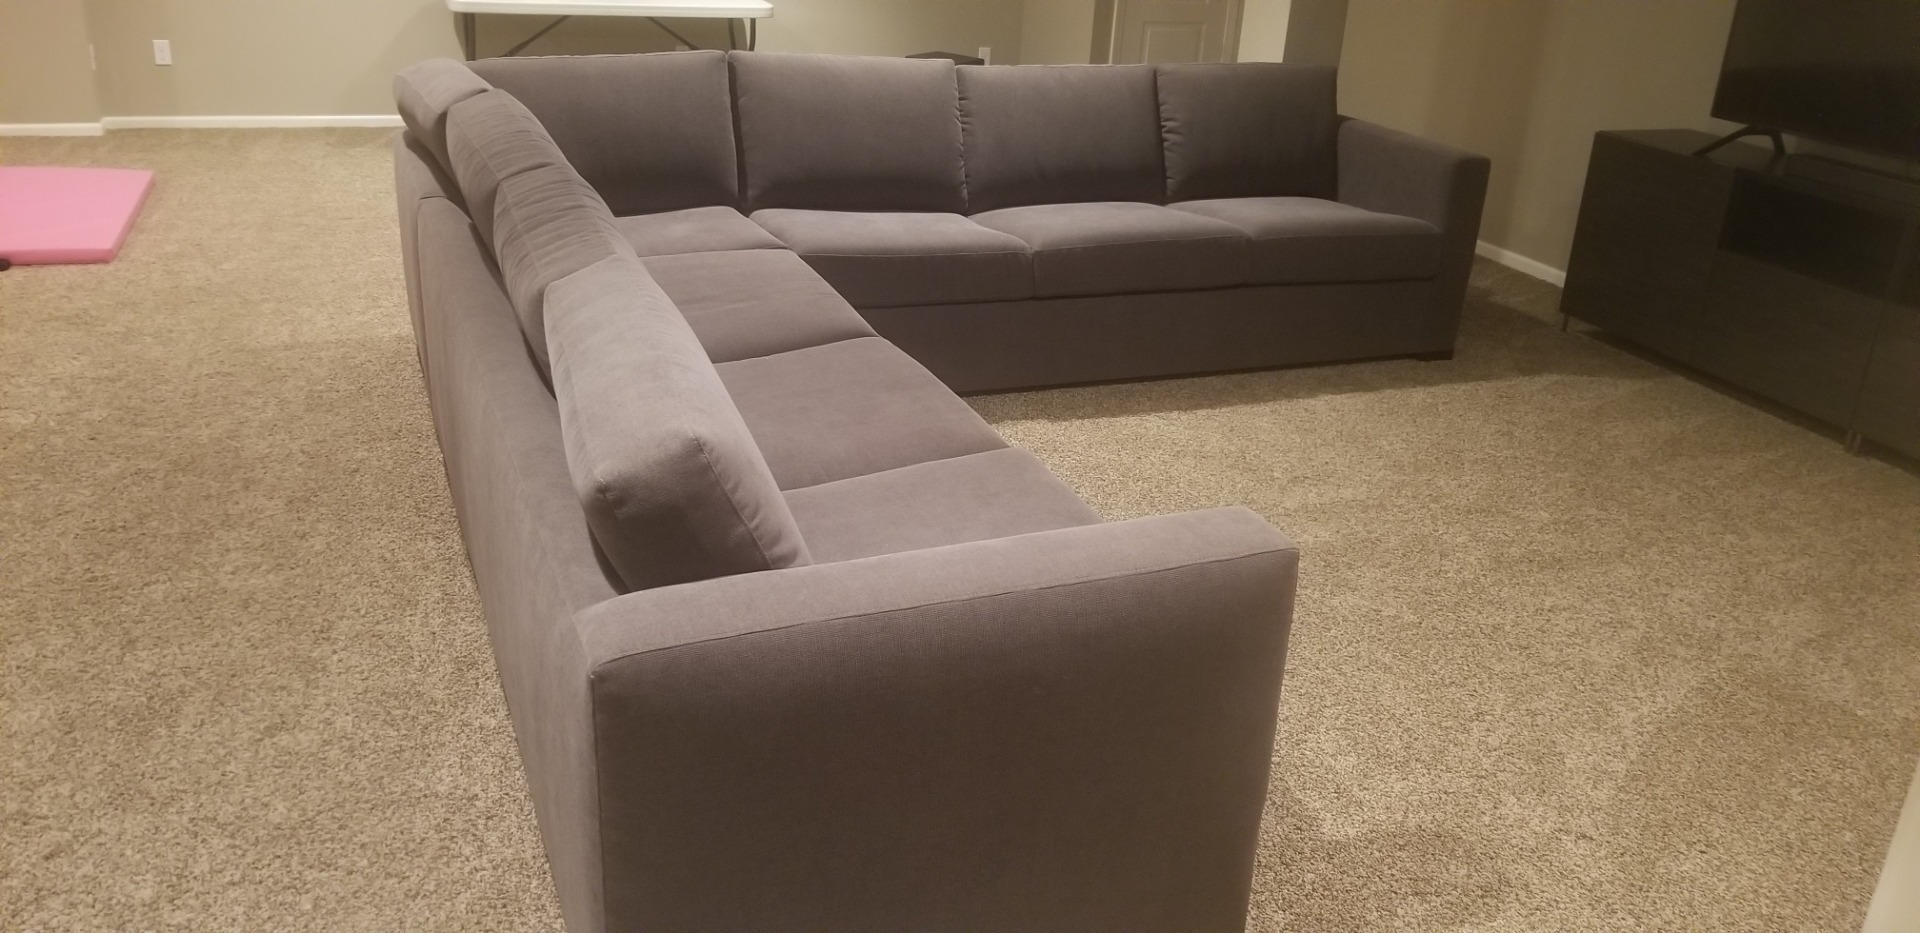 replacing your couch seat cushions